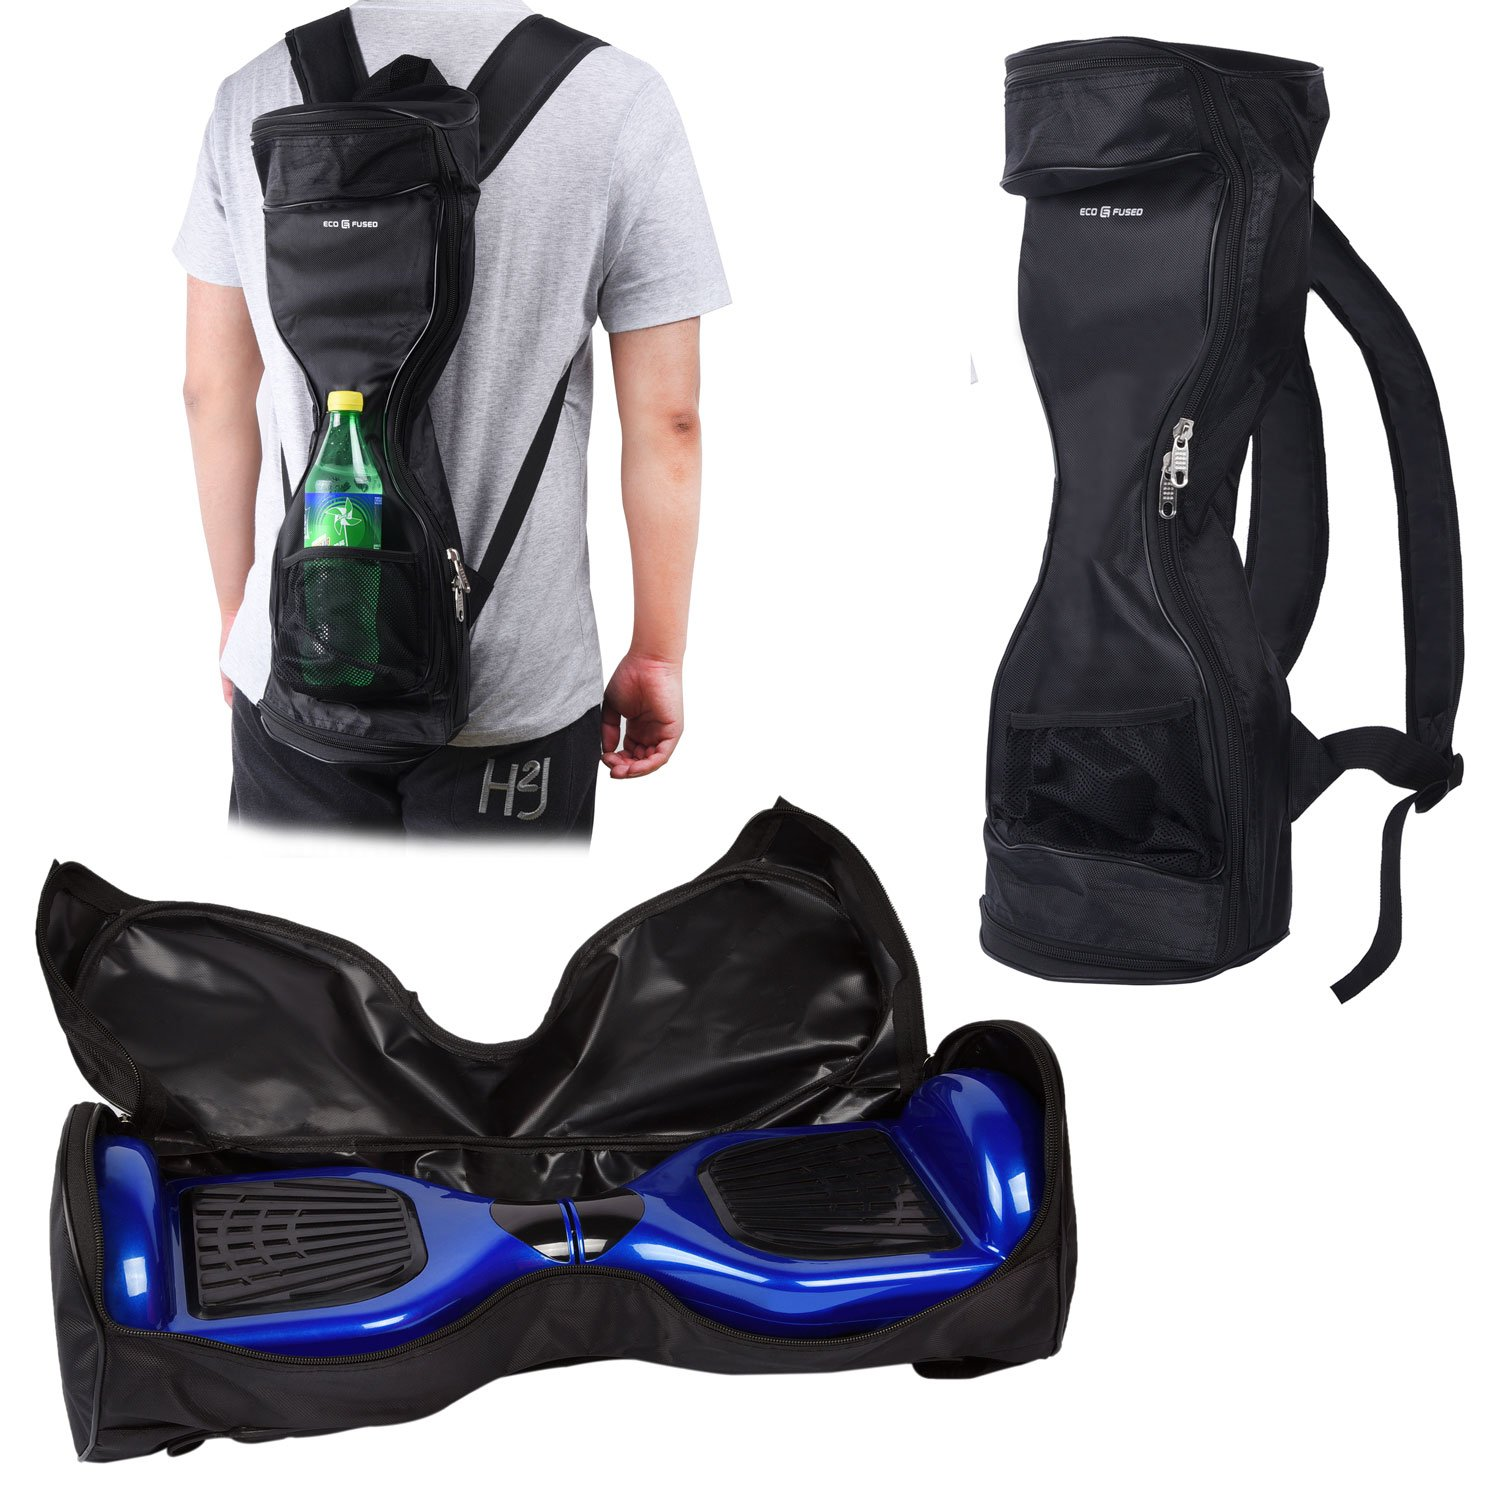 Waterproof Backpack to Carry/Store your drifting board (Two Wheels Smart Balance Board Scooter Electric Self Smart Drifting Board) - Mesh Pocket - Adjustable Shoulder Straps - Carry Handle - Black